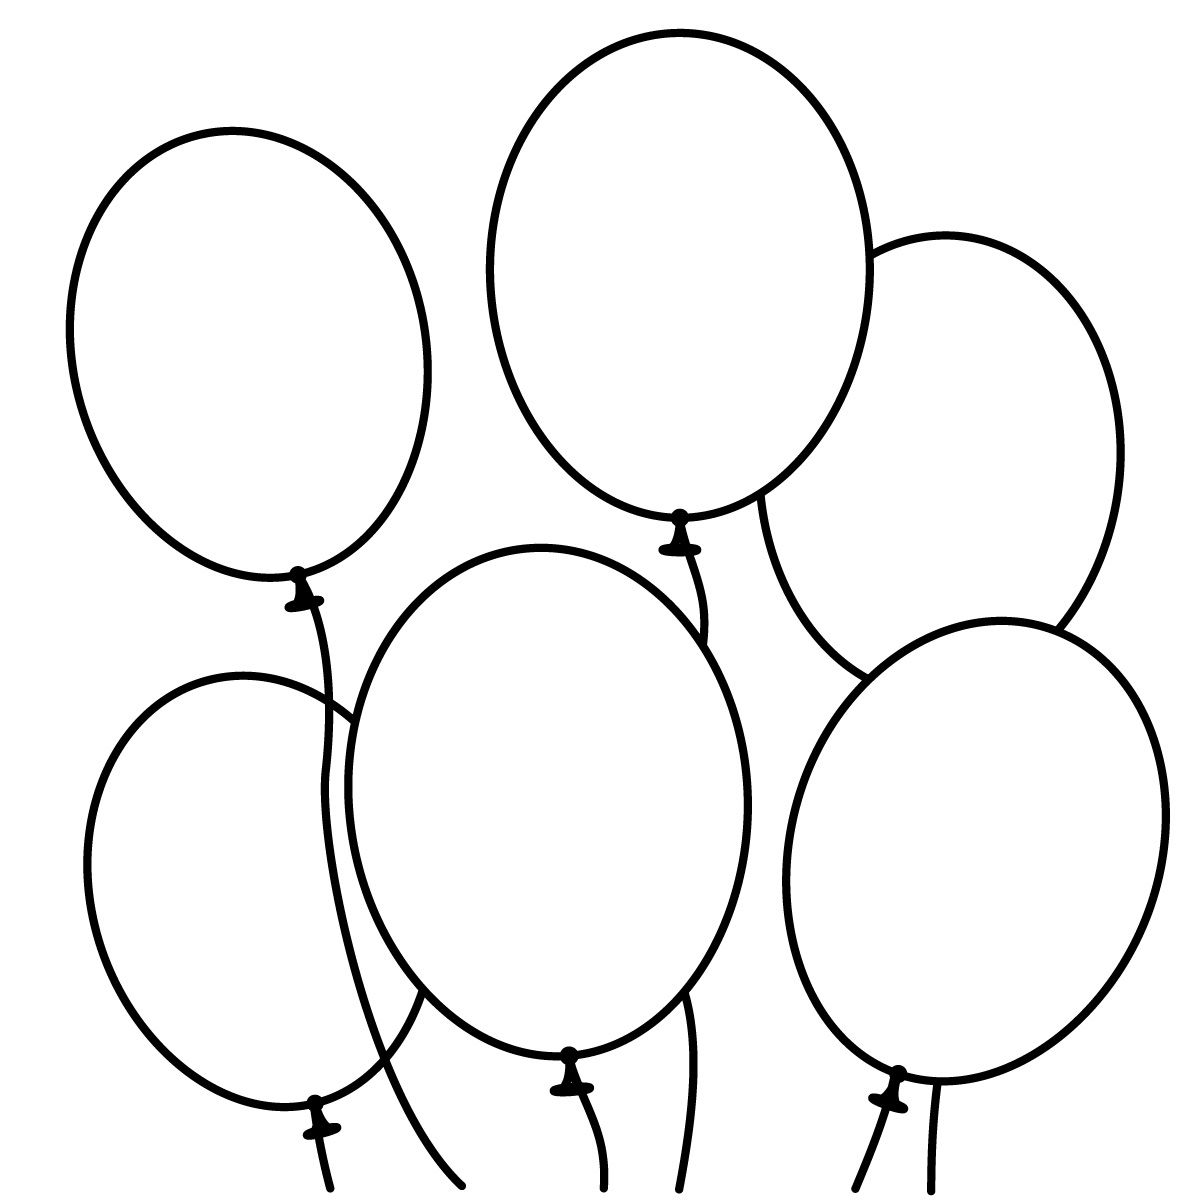 Snowmen black and white. Balloon clipart outline